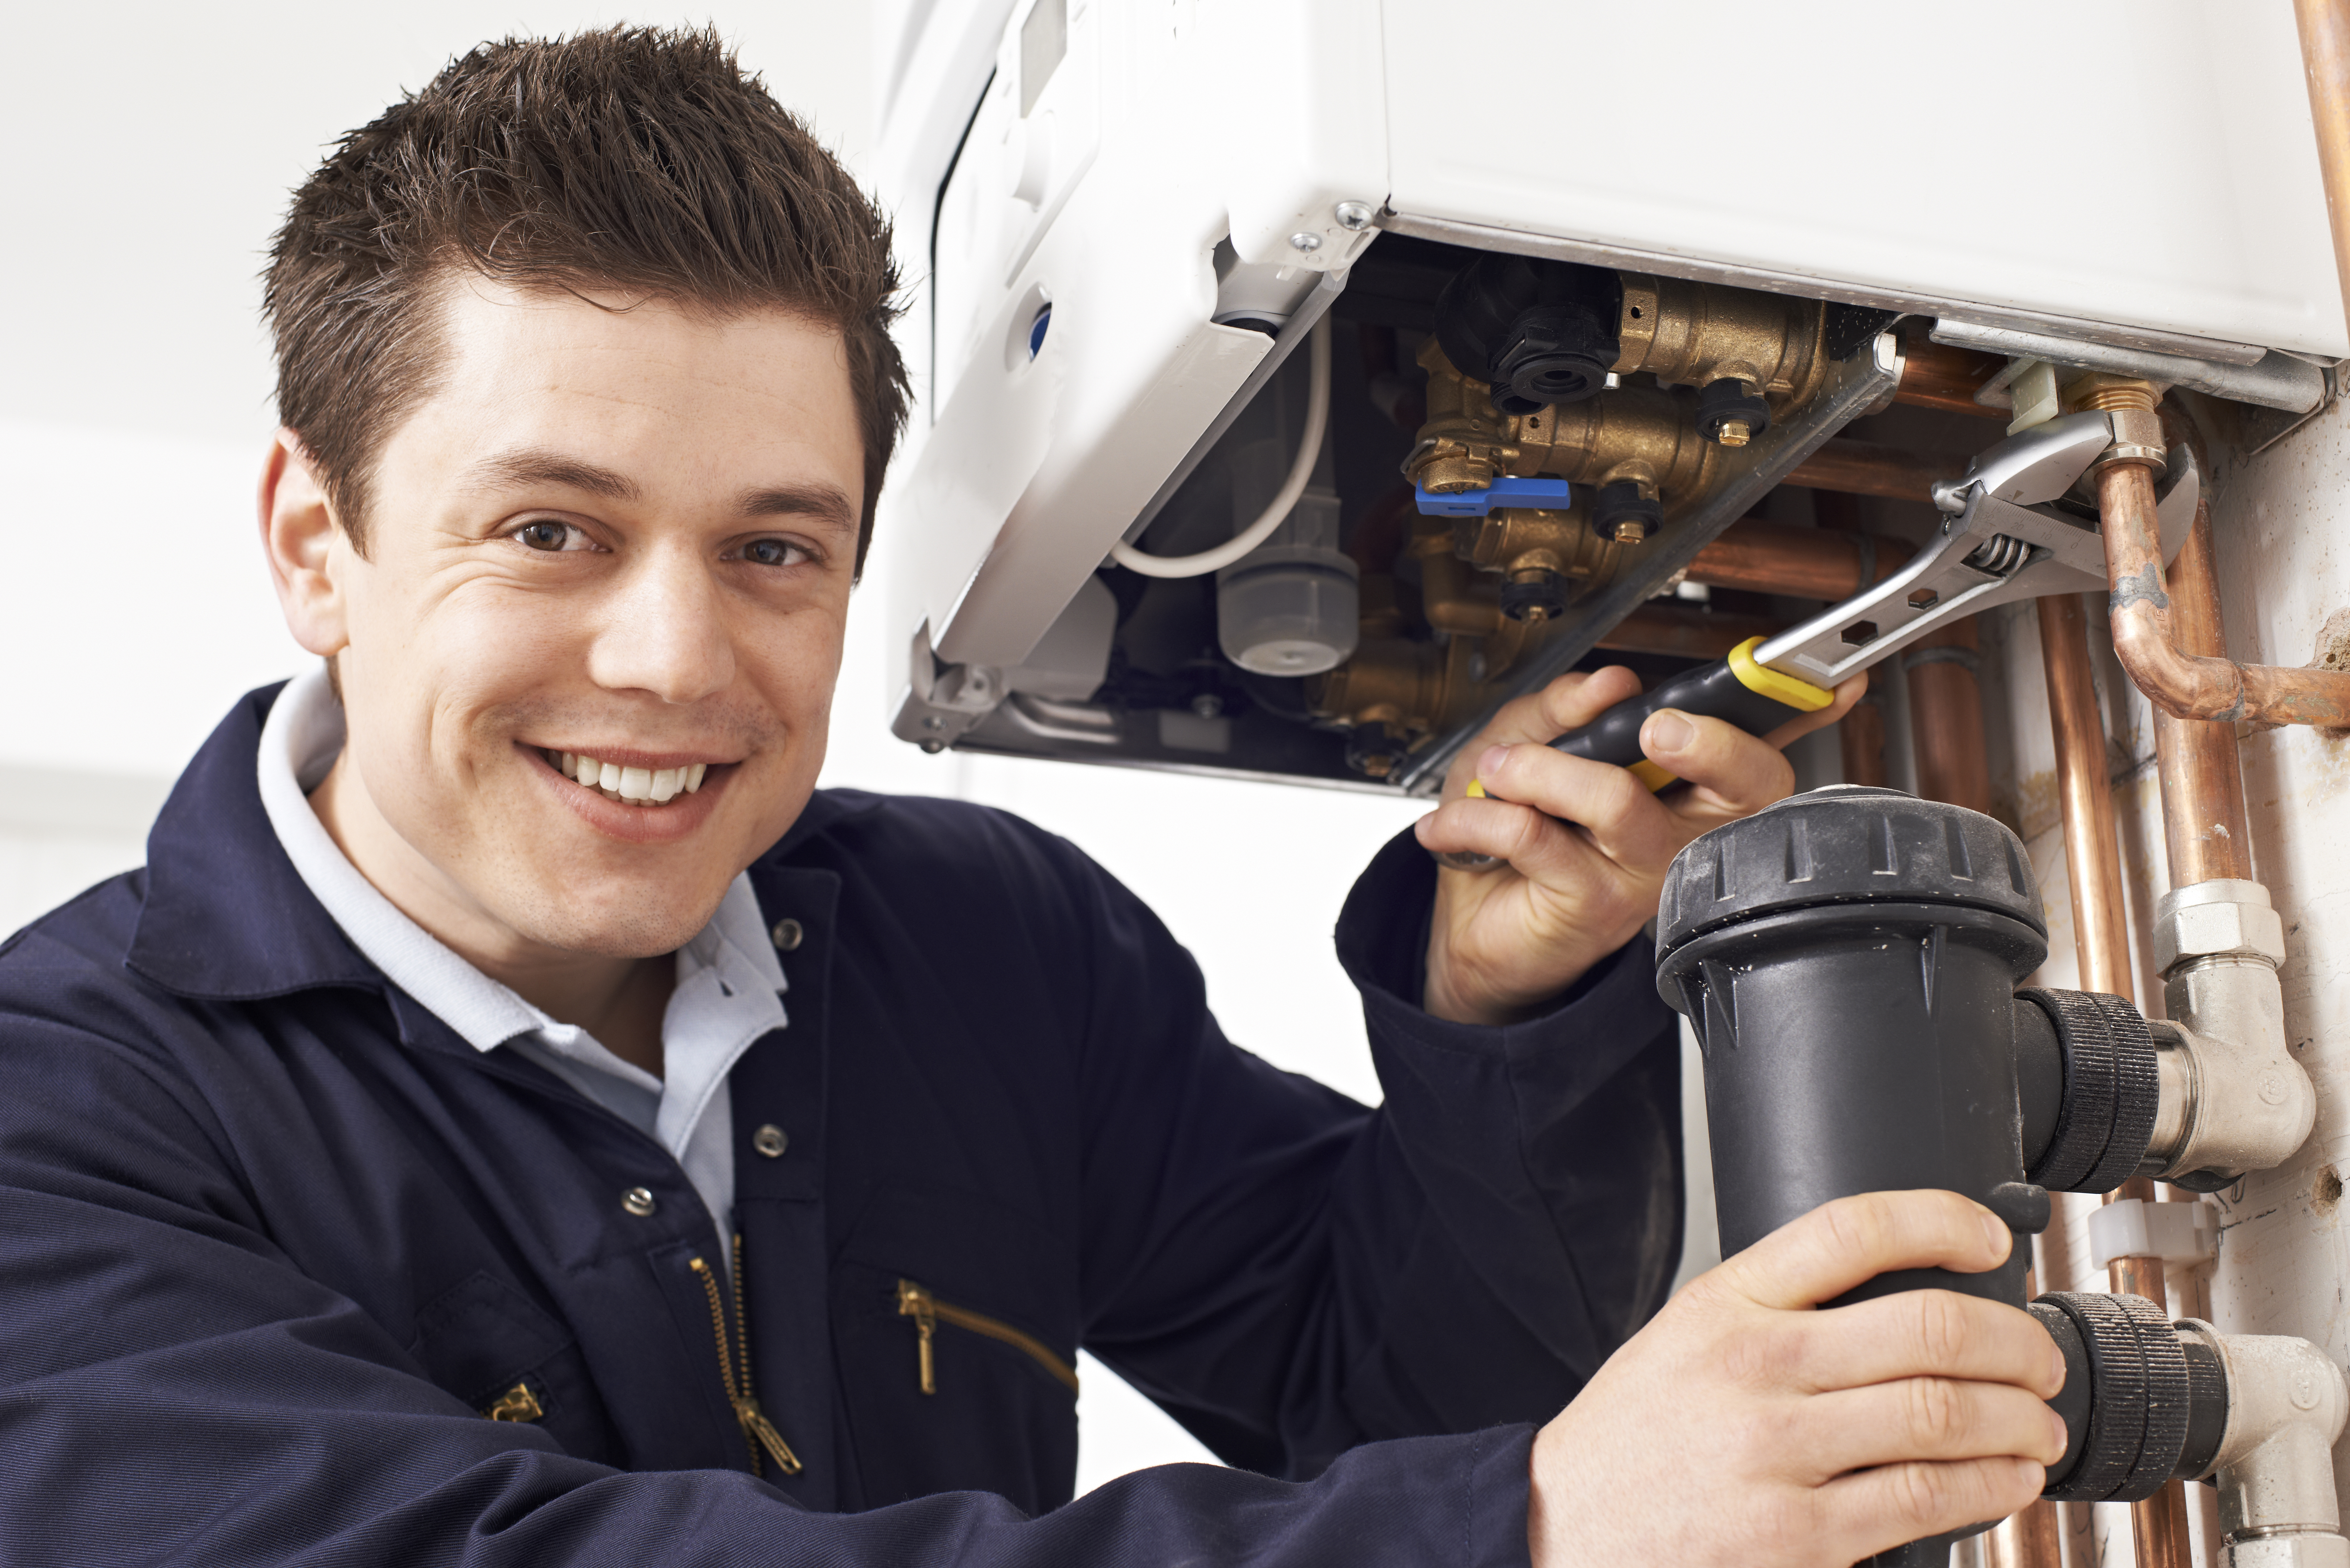 There are many routes to becoming a gas engineer